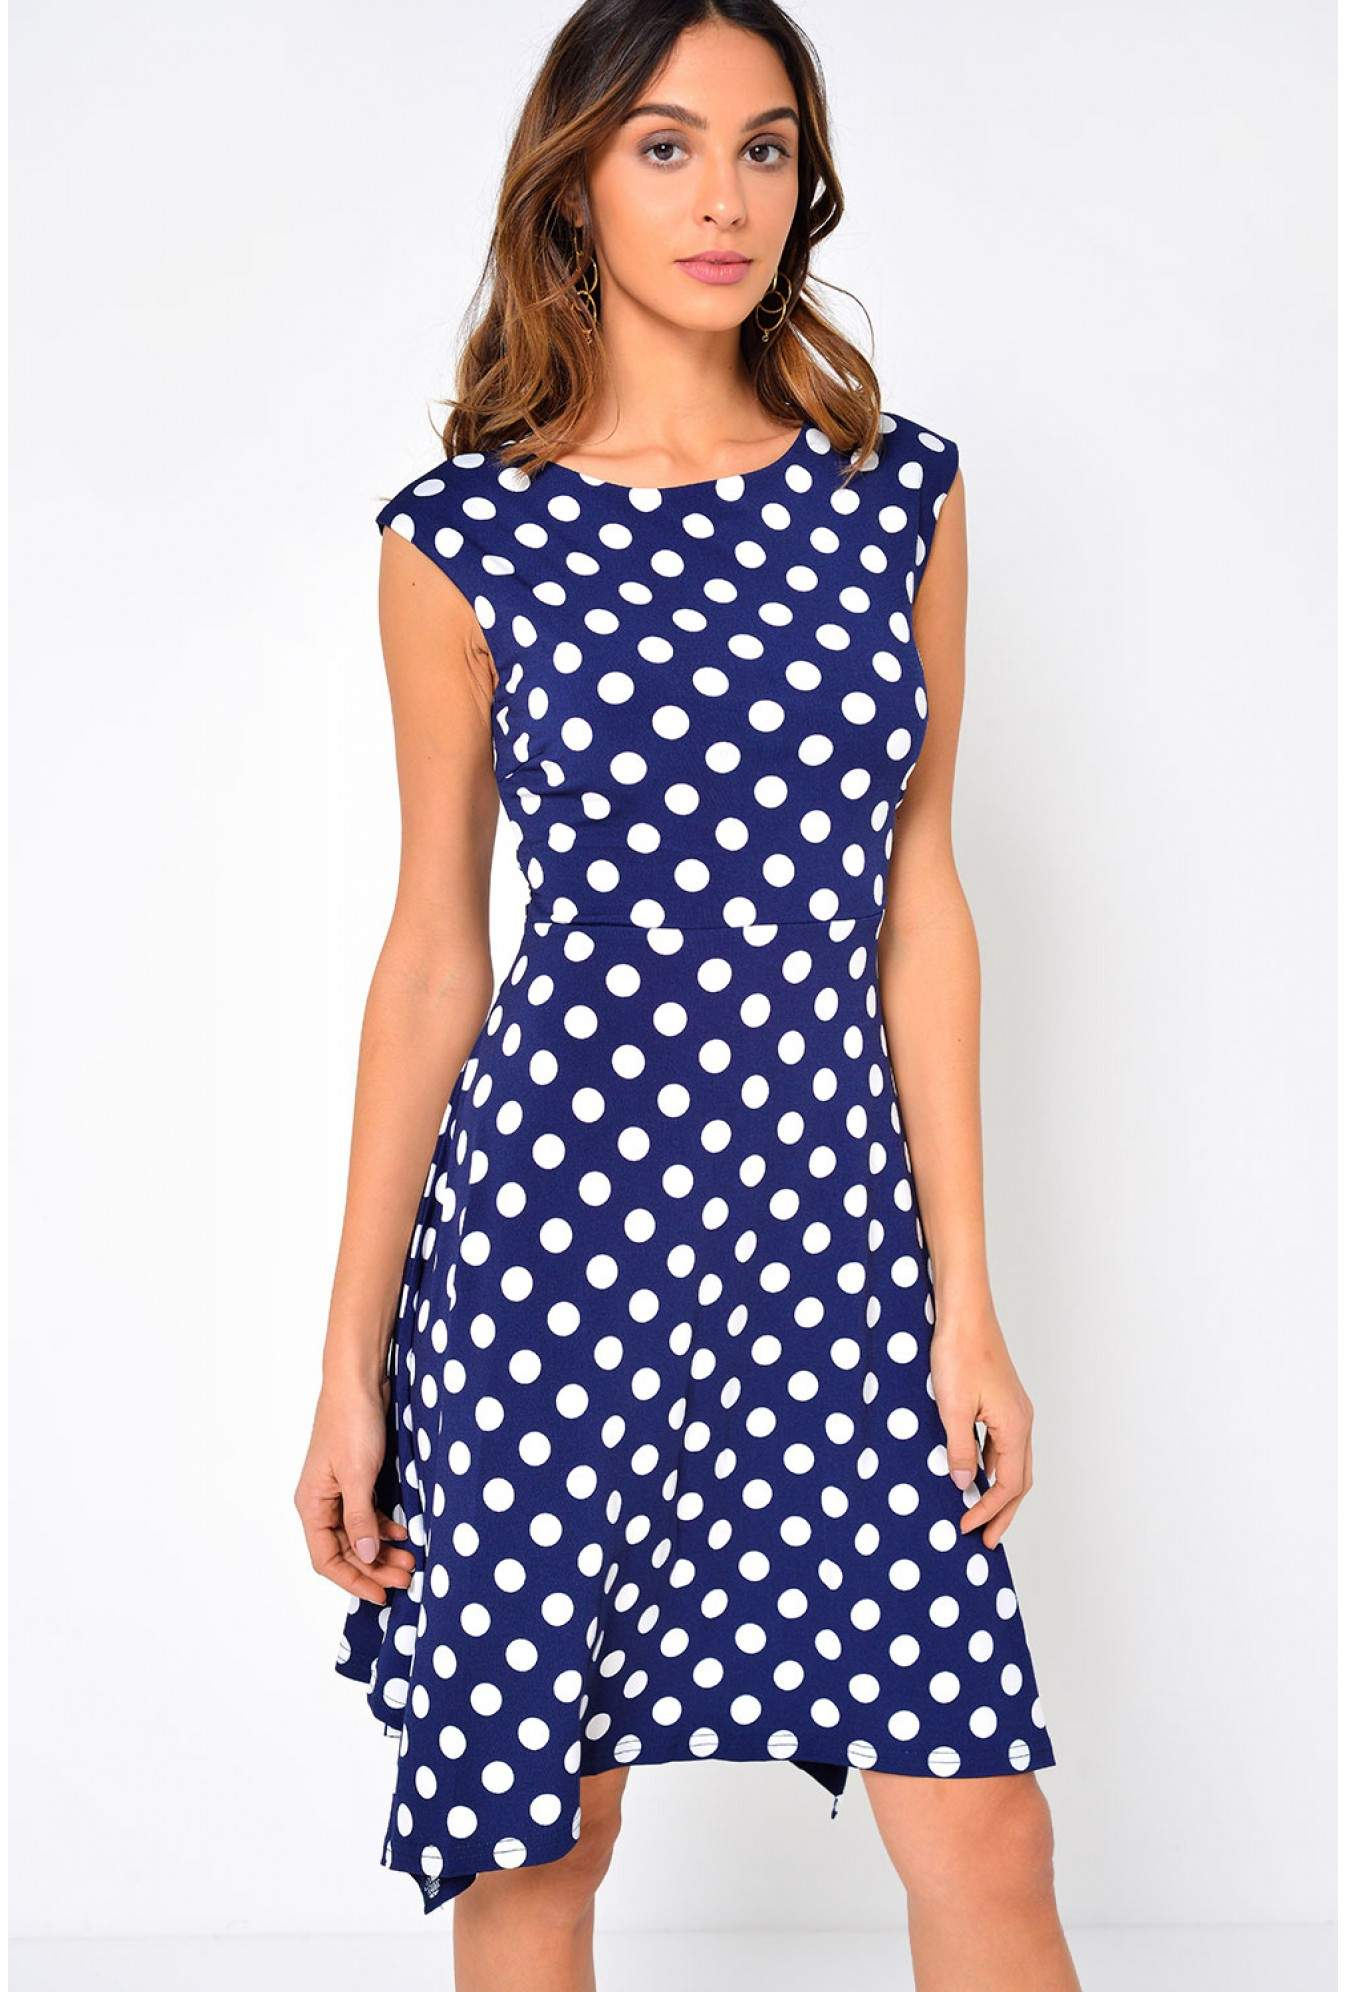 1208259ce9d25 Stella Candy Polka Dot Jersey Dress in Navy | iCLOTHING